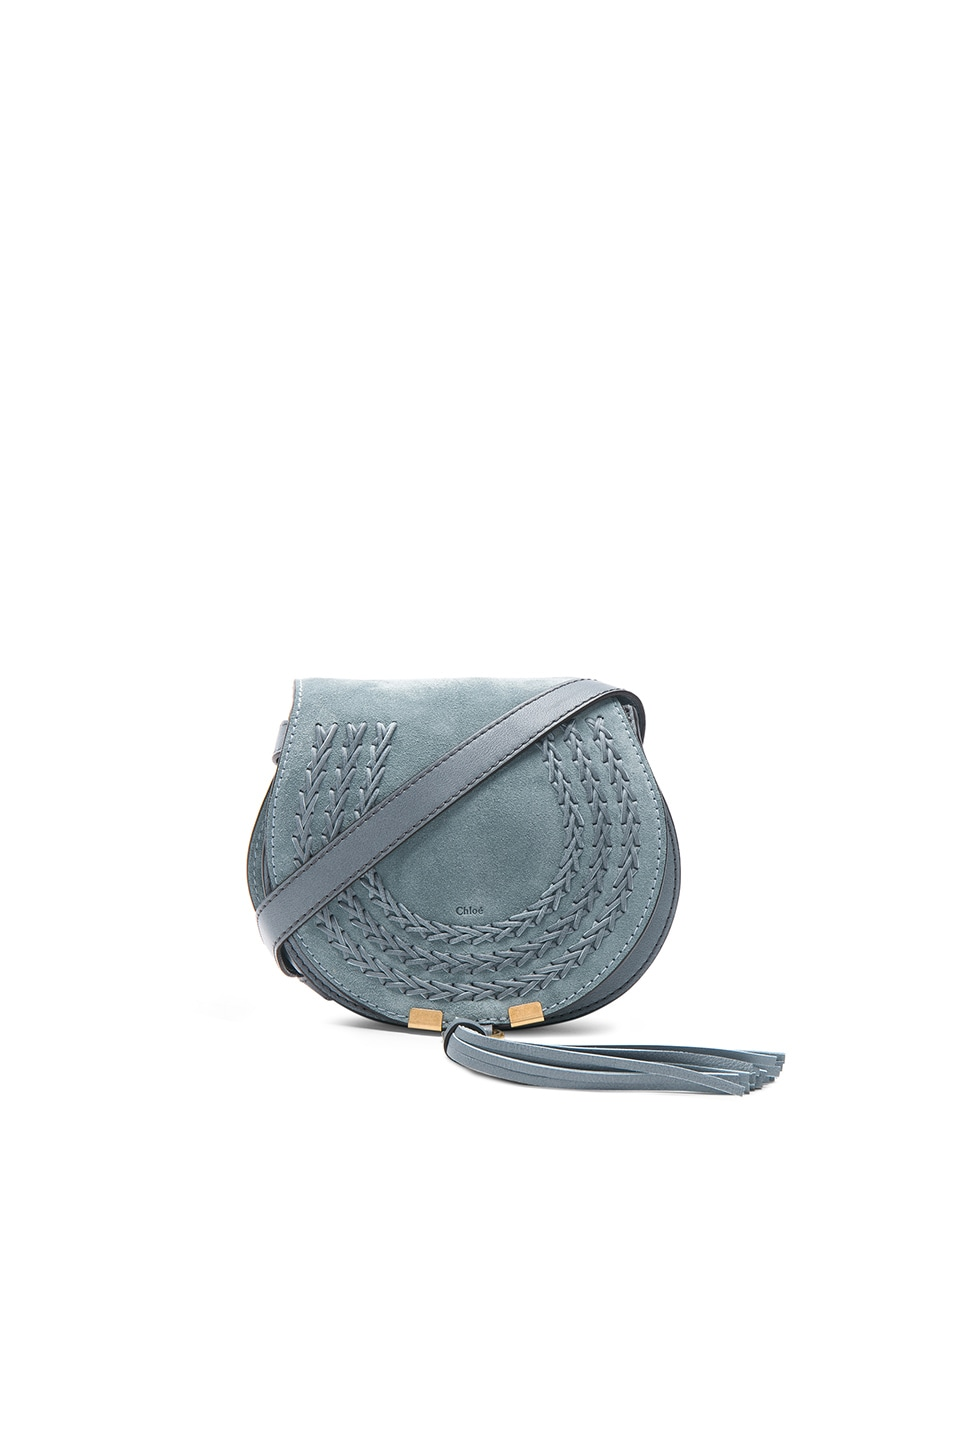 Image 1 of Chloe Small Marcie Suede Saddle Bag in Cloudy Blue